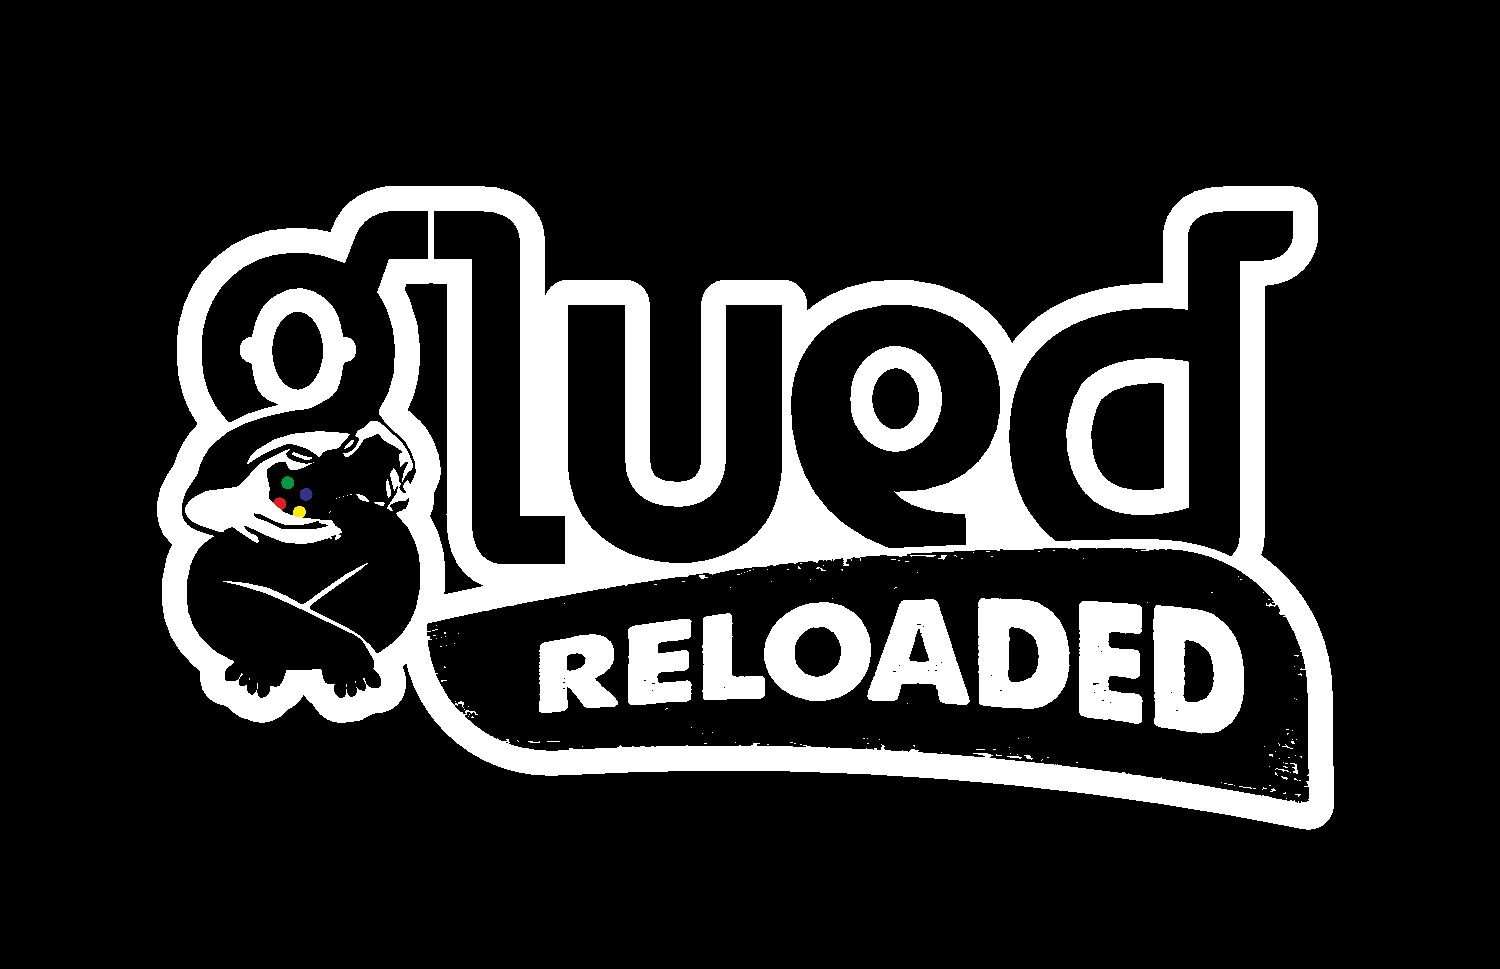 GLUED RELOADED